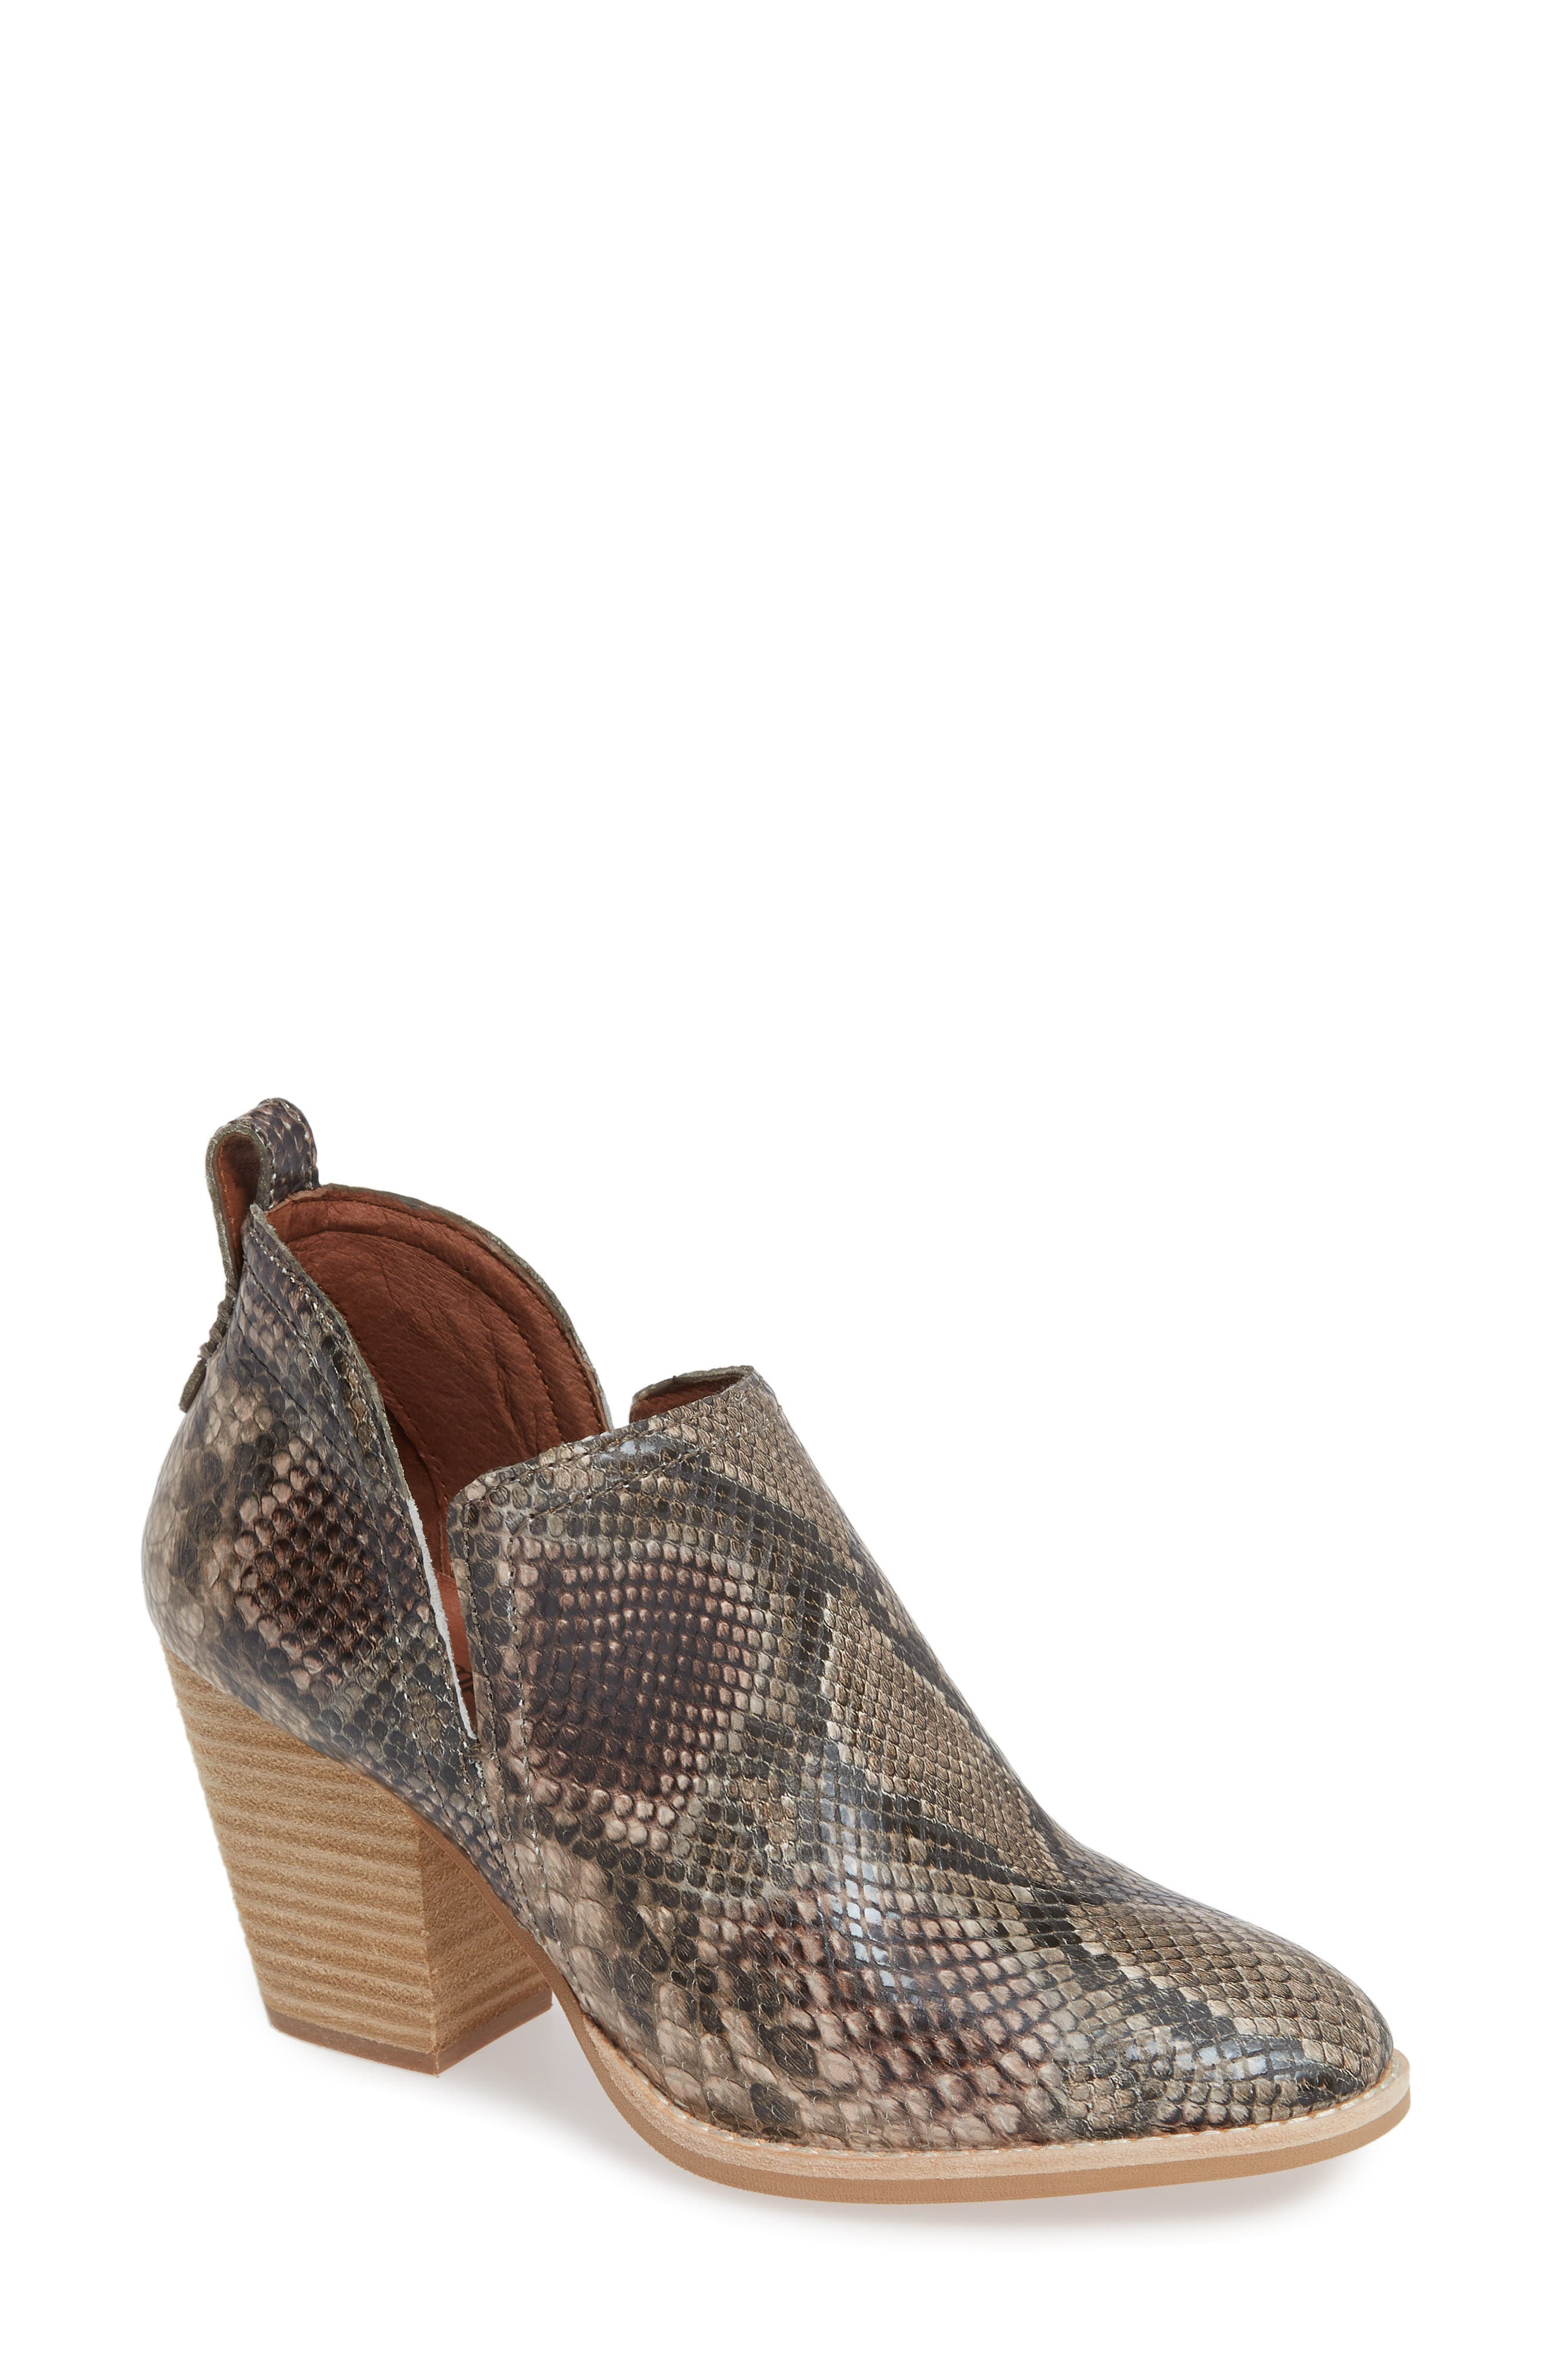 Rosalee Bootie,                         Main,                         color, TAUPE SNAKE PRINT MULTI